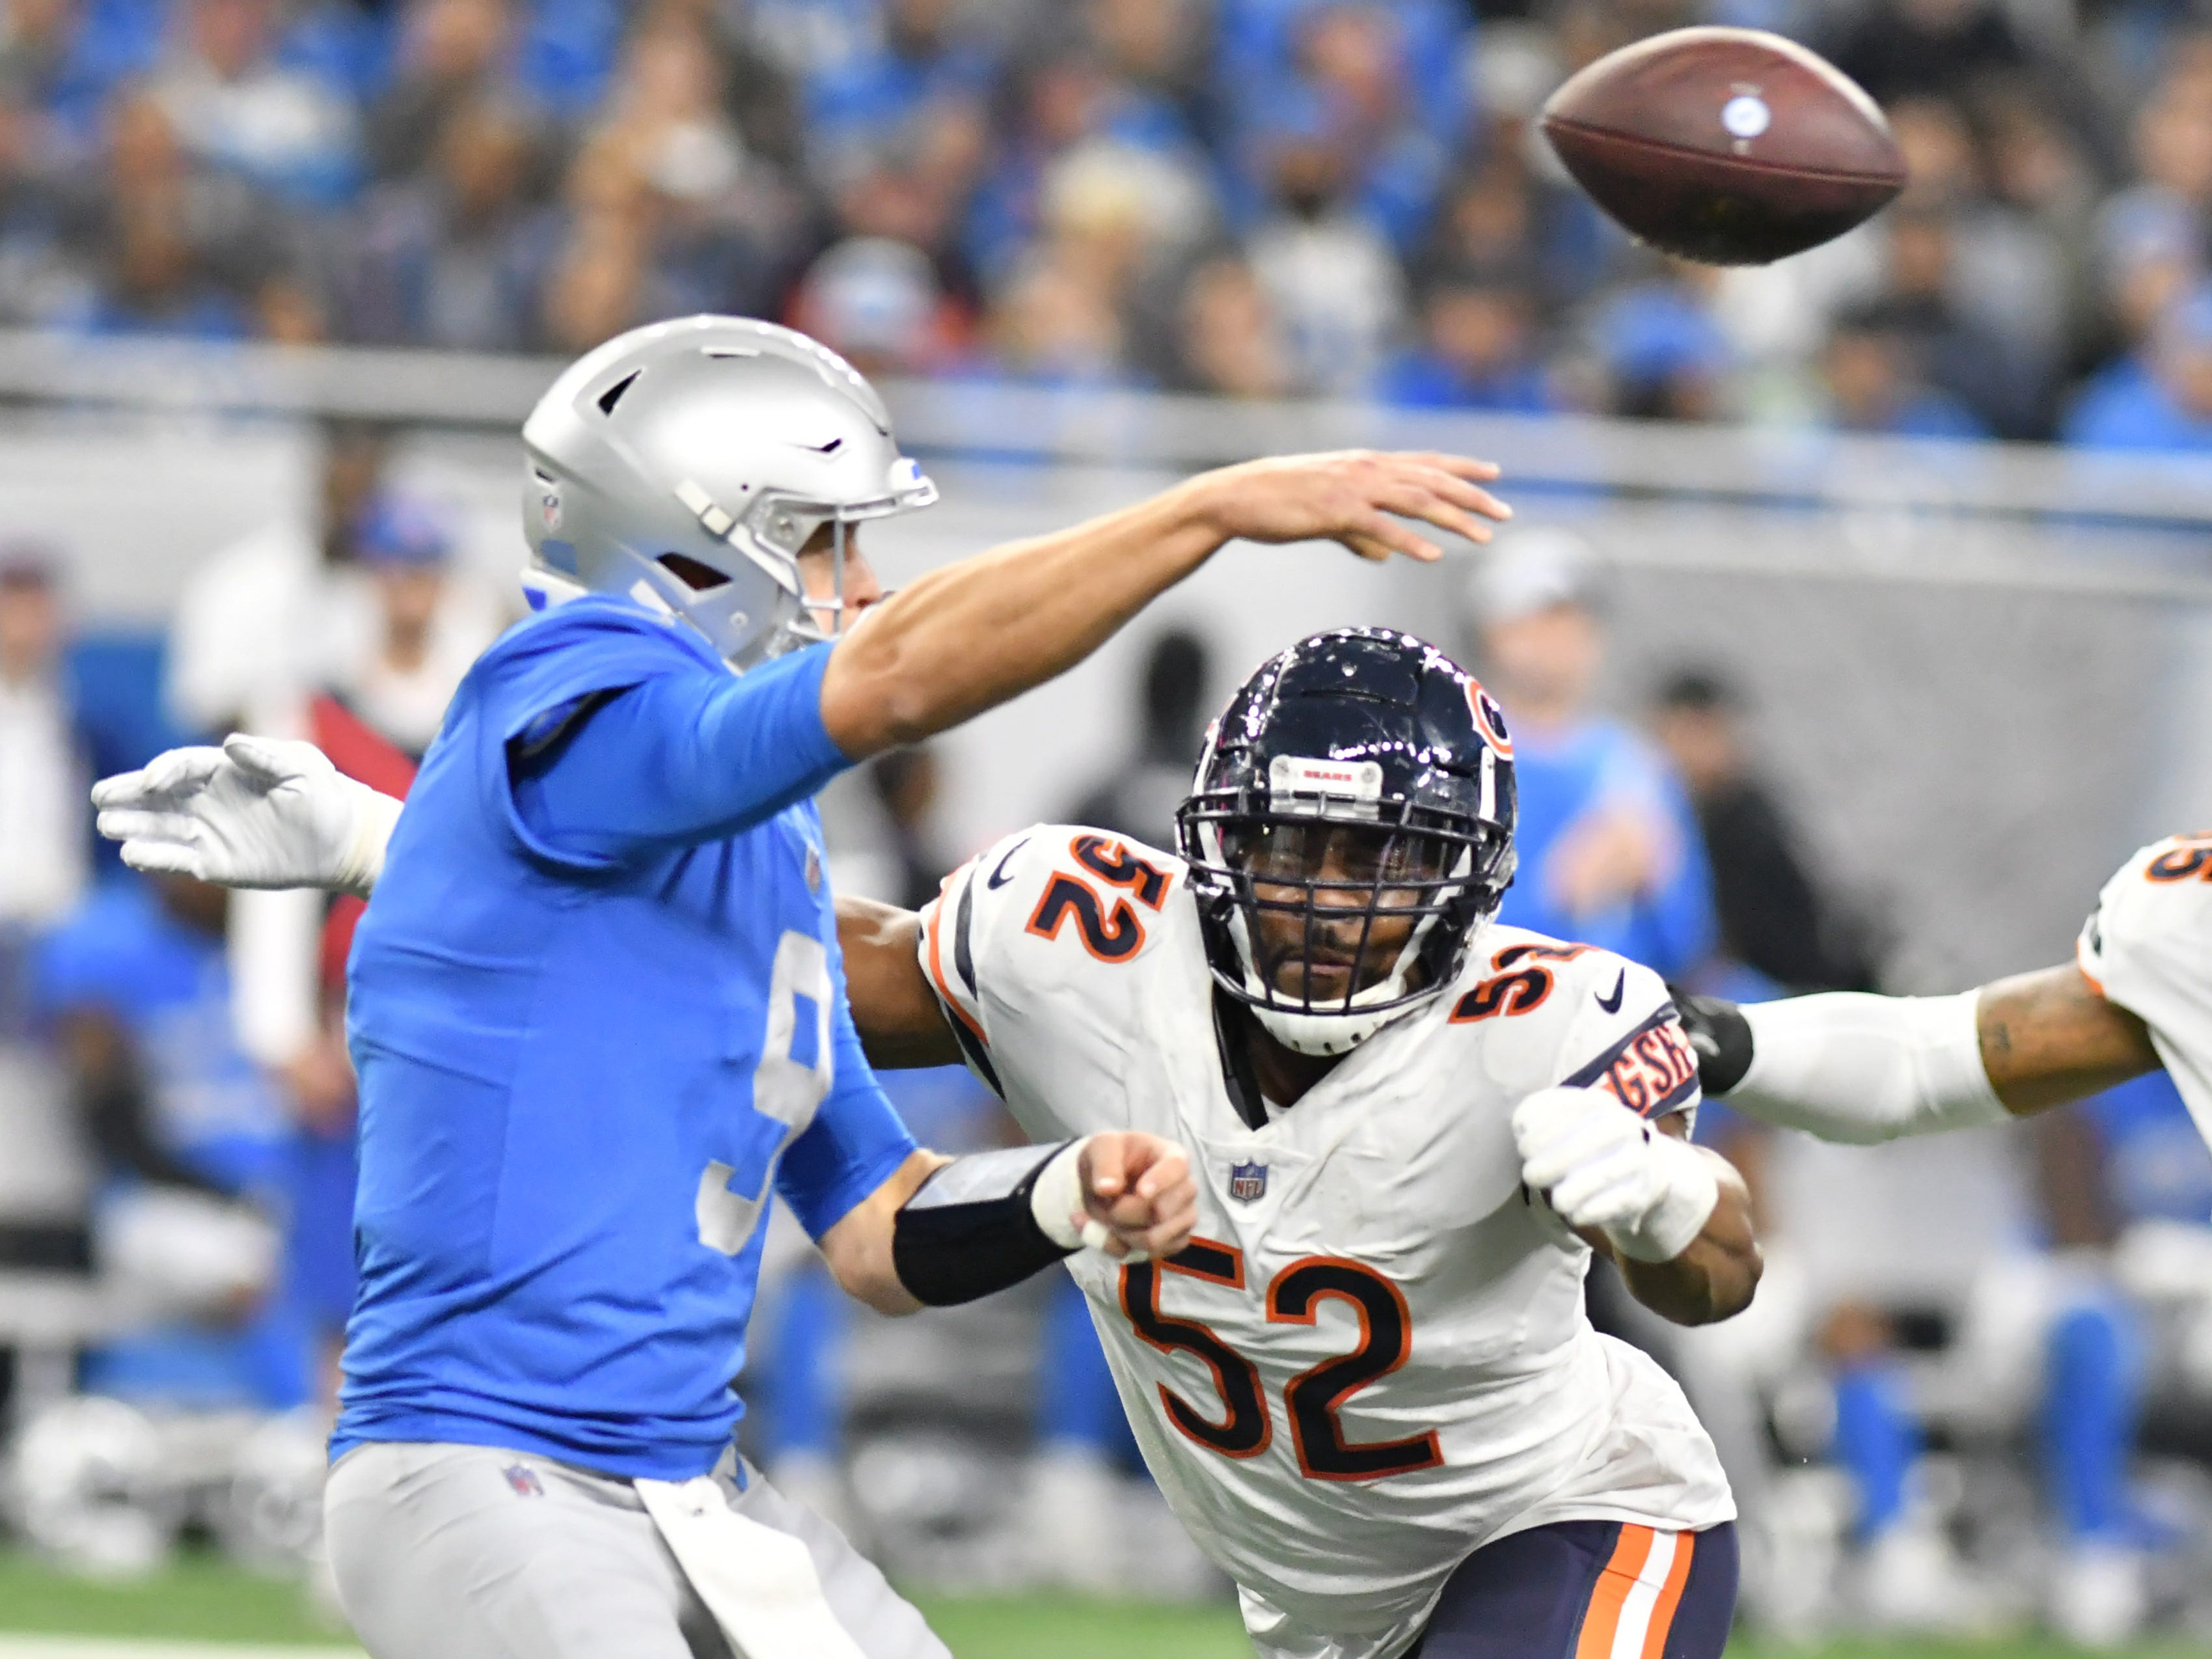 The Bears' Khalil Mack comes in to pressure Lions quarterback Matthew Stafford In the fourth quarter.